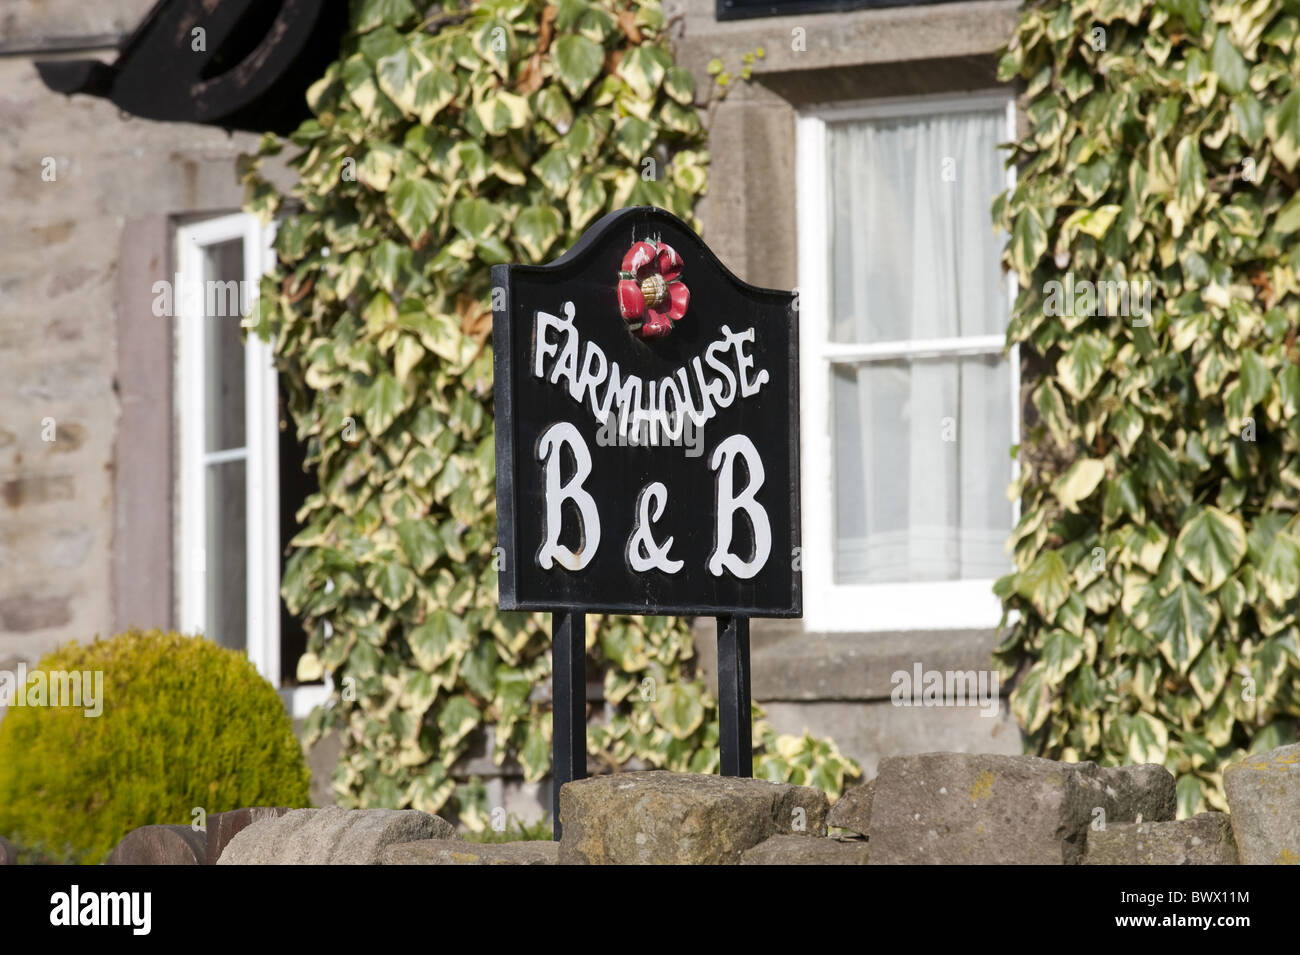 B B Bed Breakfast Farmhouse B B Bed Breakfast Sign Wood End Farm Stock Photo